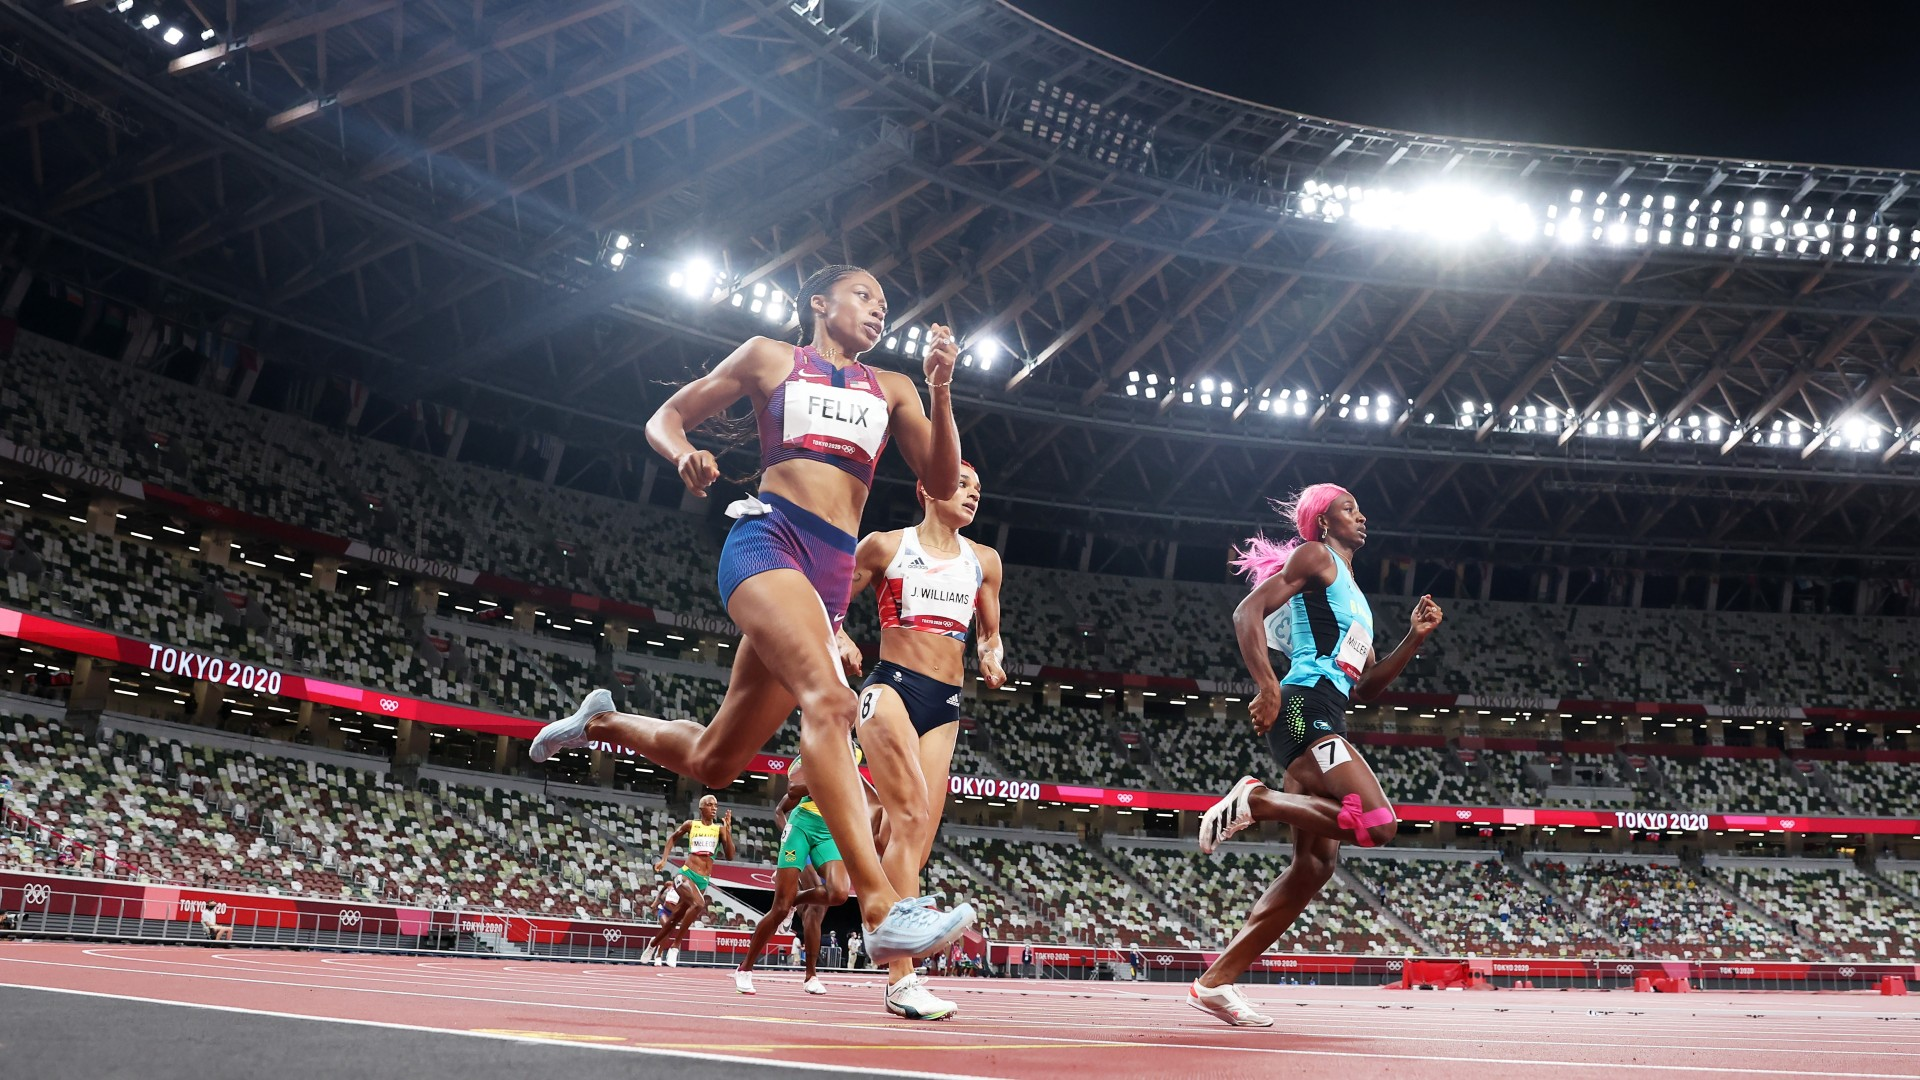 Allyson Felix becomes the most decorated female Olympian in history